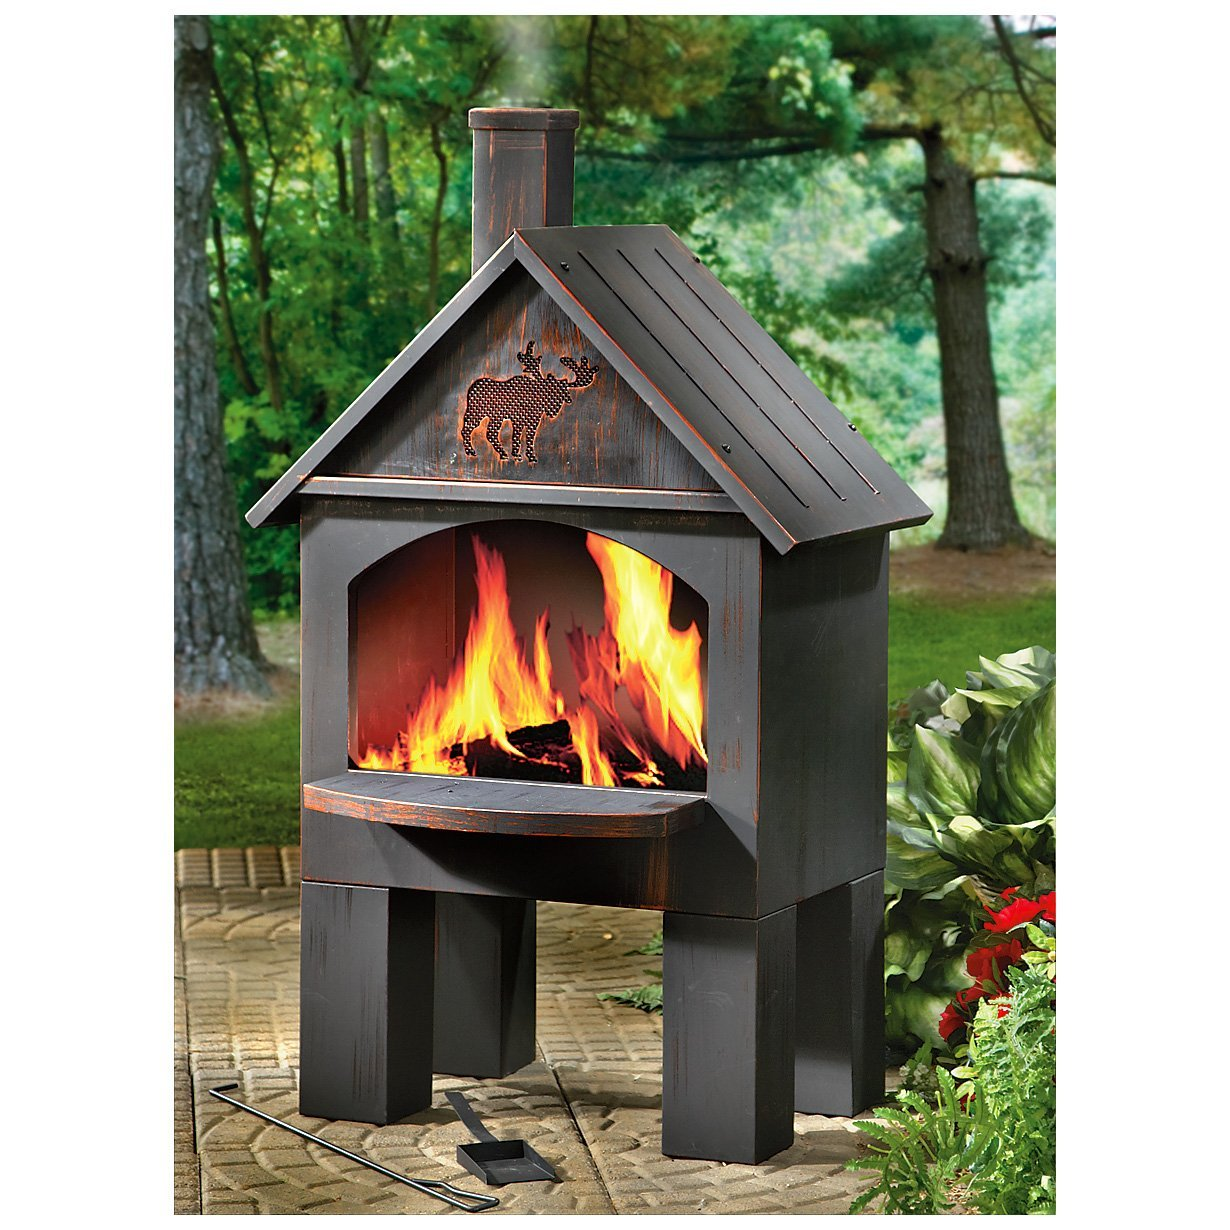 Affordable Outdoor Metal Fireplace — Rickyhil Outdoor Ideas on Quillen Steel Outdoor Fireplace id=70189